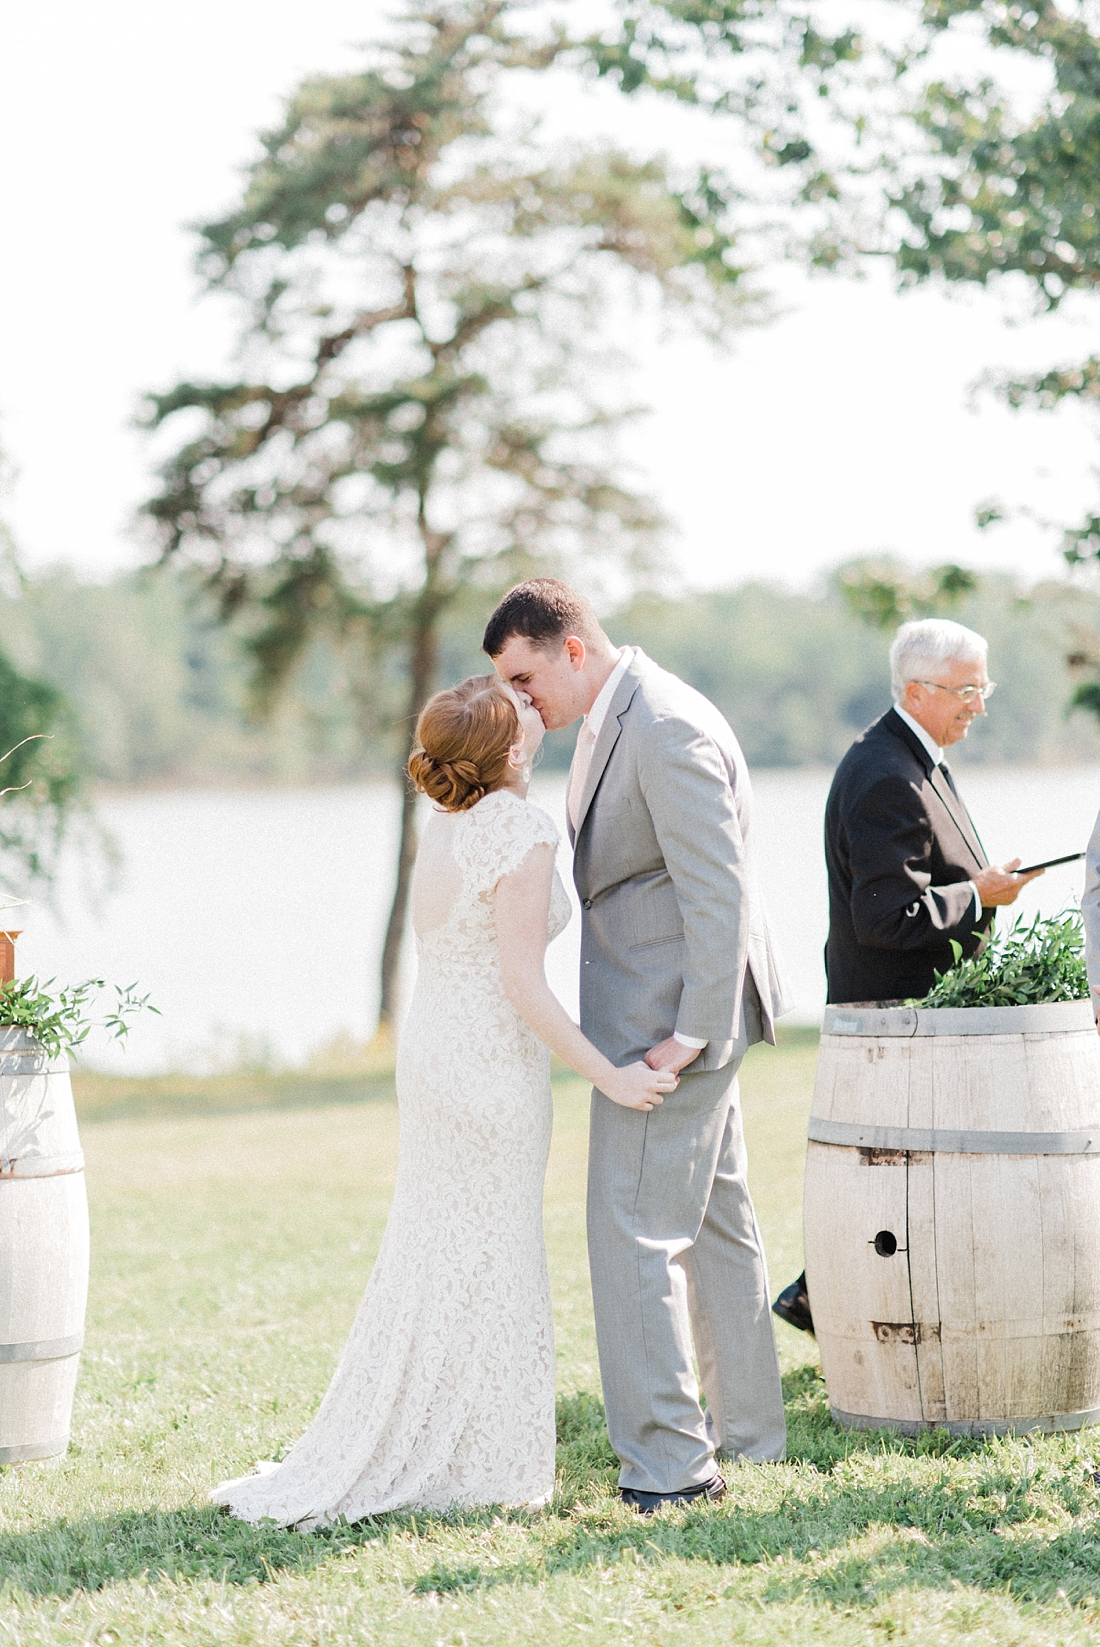 Marryland Weddings Blush and Green Romantic Summer Wedding Jubilee Farms Meghan Elizabeth Photography_0972.jpg